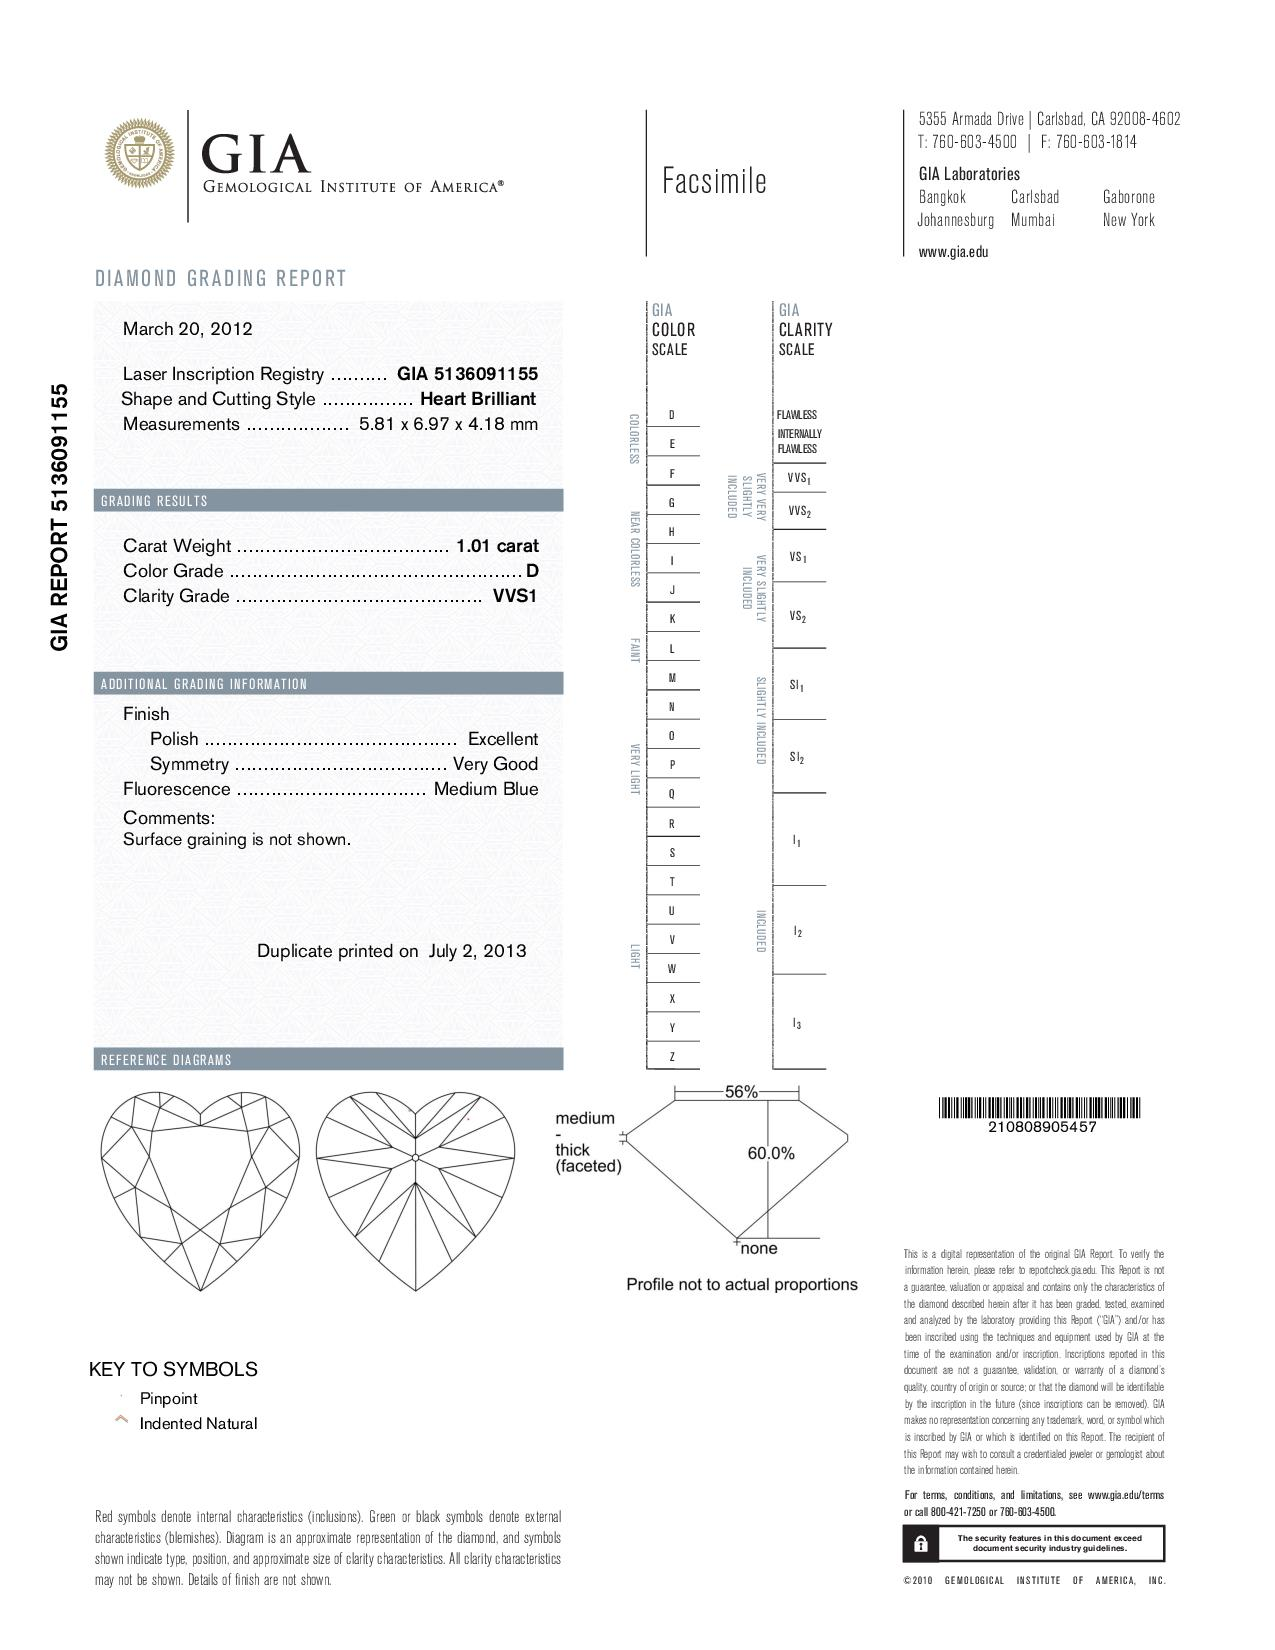 This is a 1.01 carat heart shape, D color, VVS1 clarity natural diamond accompanied by a GIA grading report.